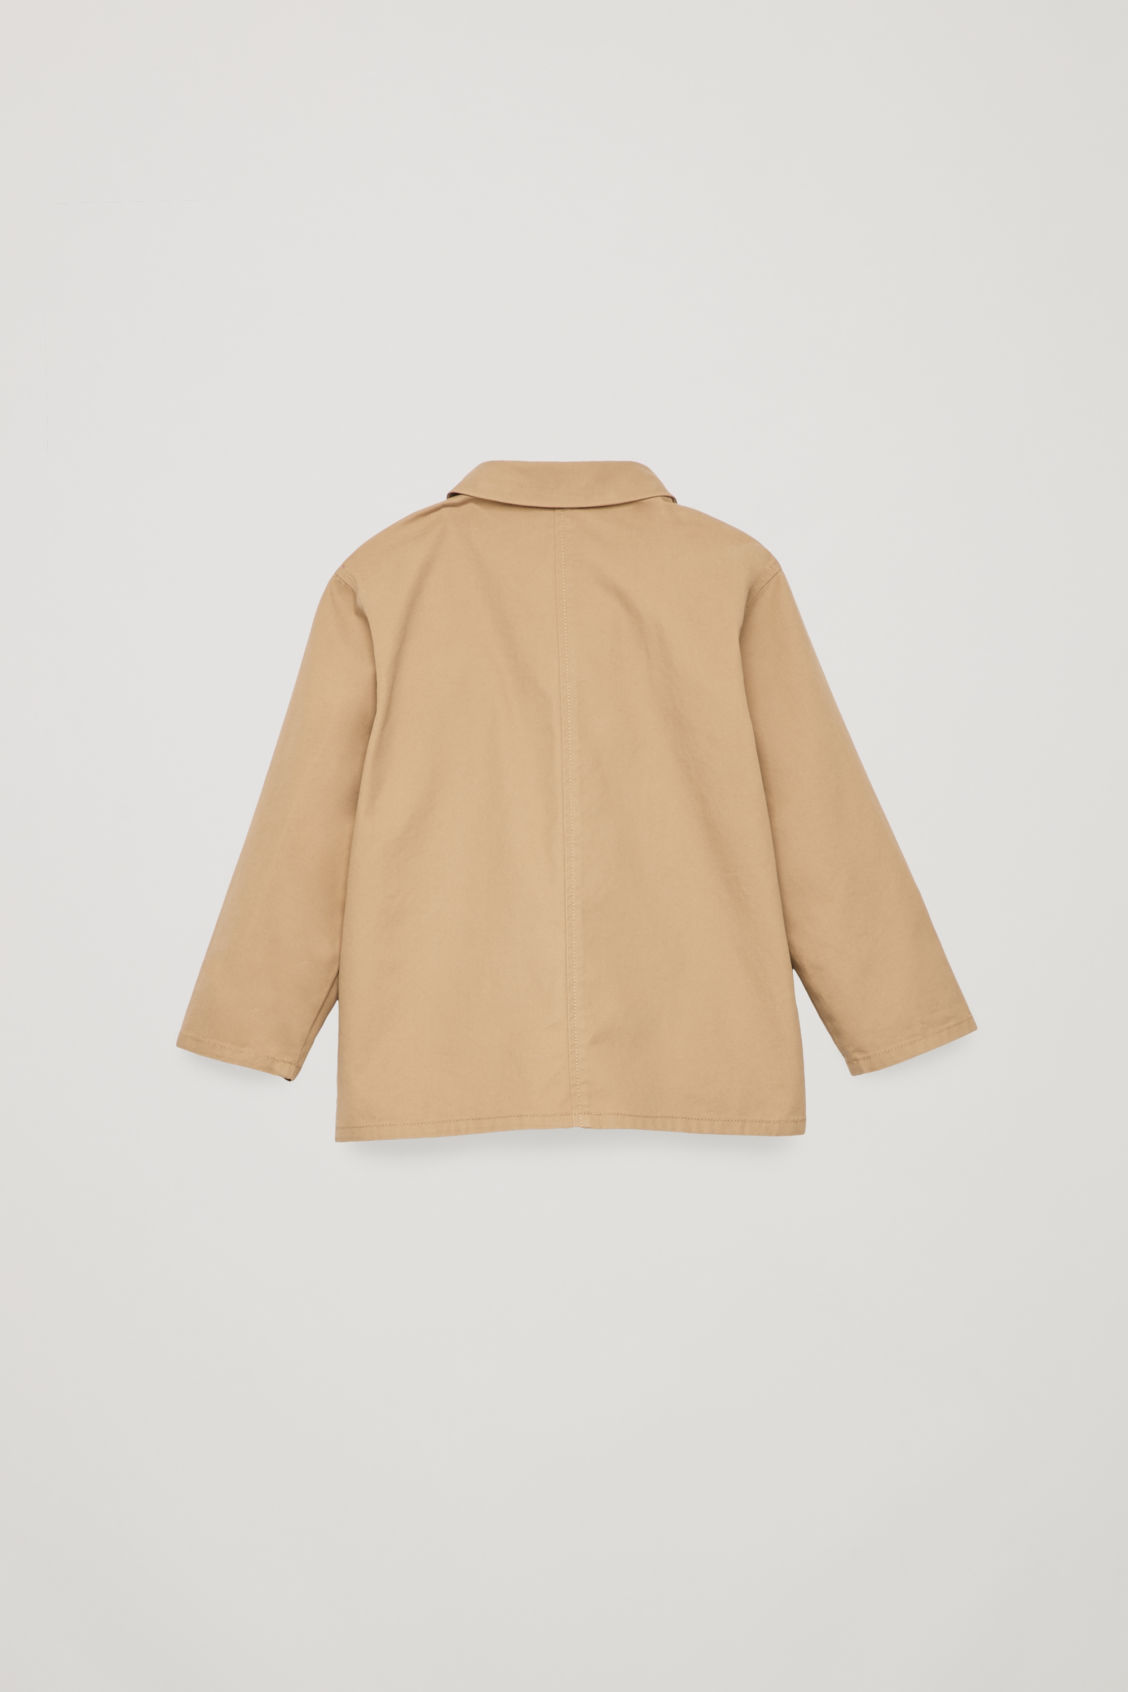 Side image of Cos cotton shirt jacket in brown